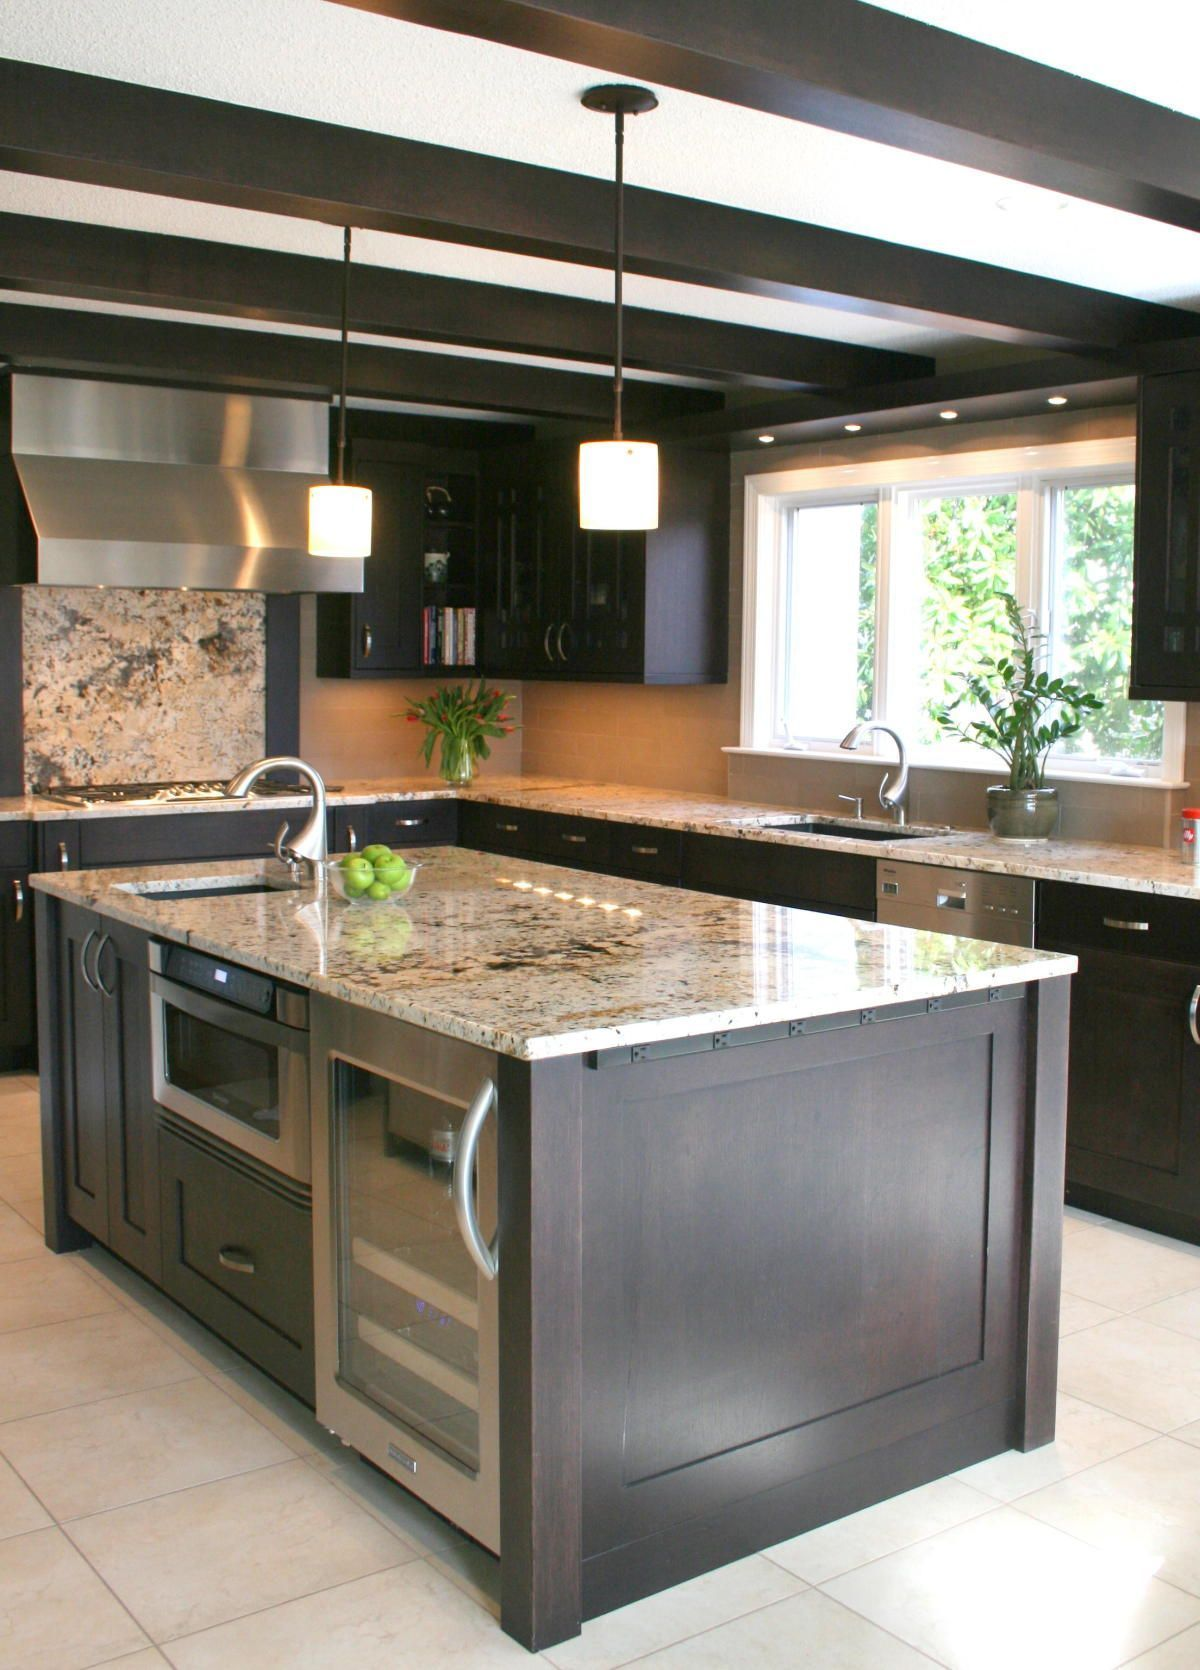 Find And Save Inspiration About Kitchen Island Designs Ideas On Steeringnews Com See More Stylish Kitchen Island Kitchen Island Design Stylish Kitchen Design